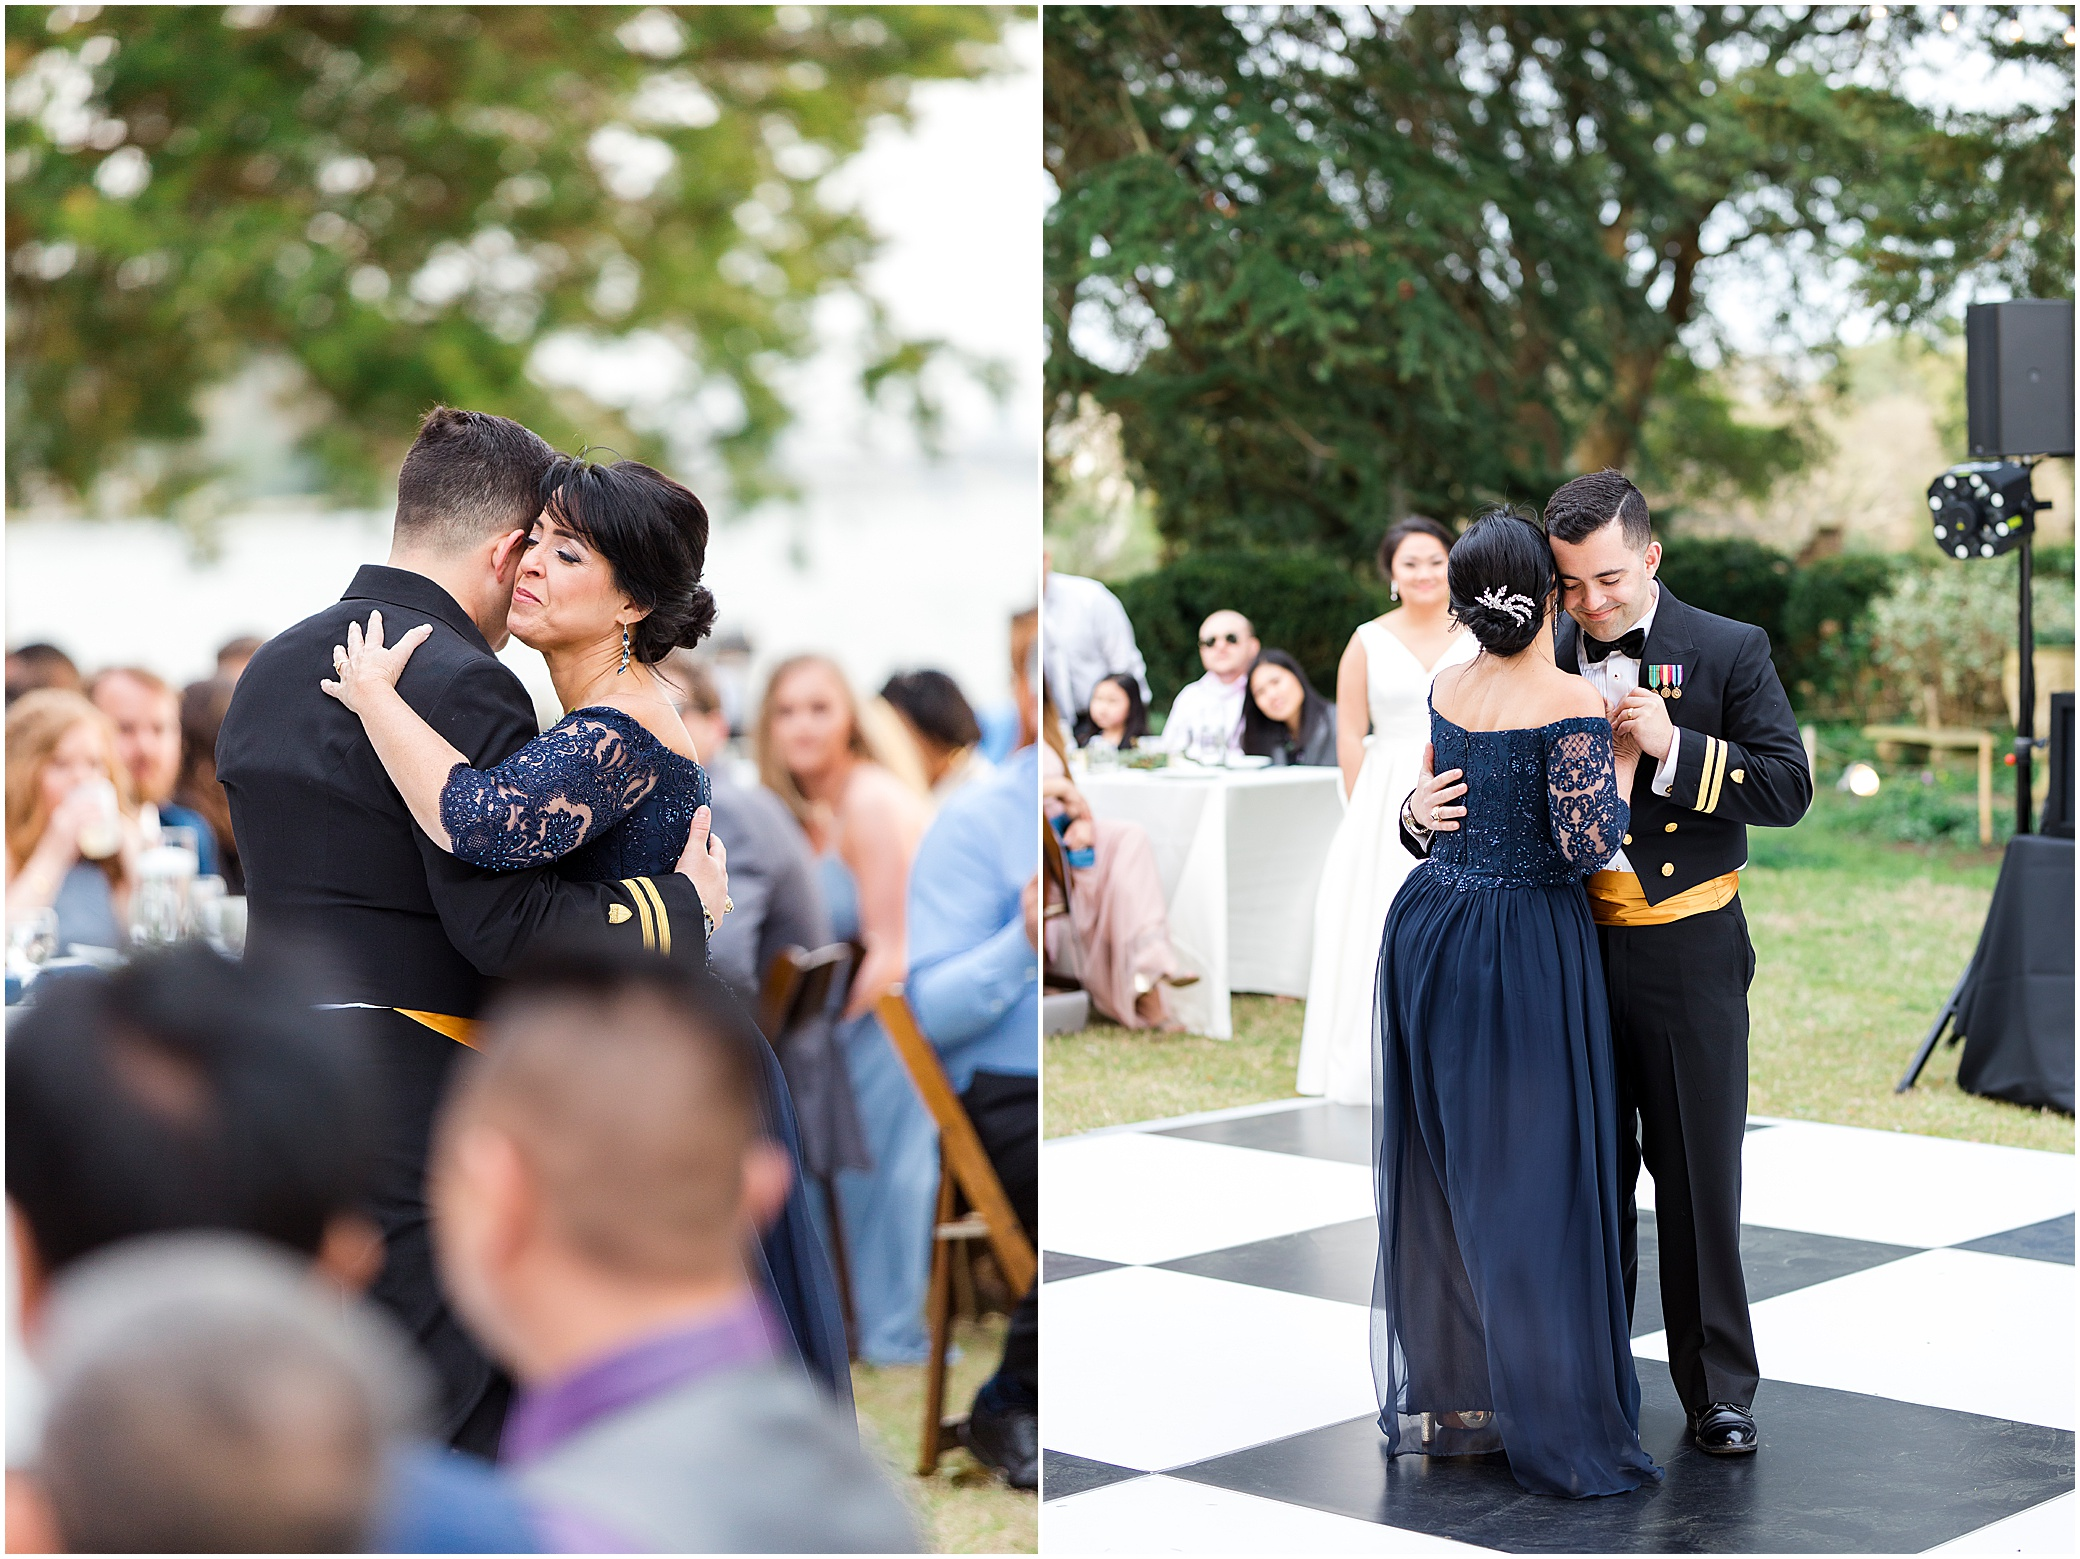 mother and son dance, spring wedding at the hermitage museum and gardens, Jessica Ryan photography, sunkissed events, outdoor wedding reception,